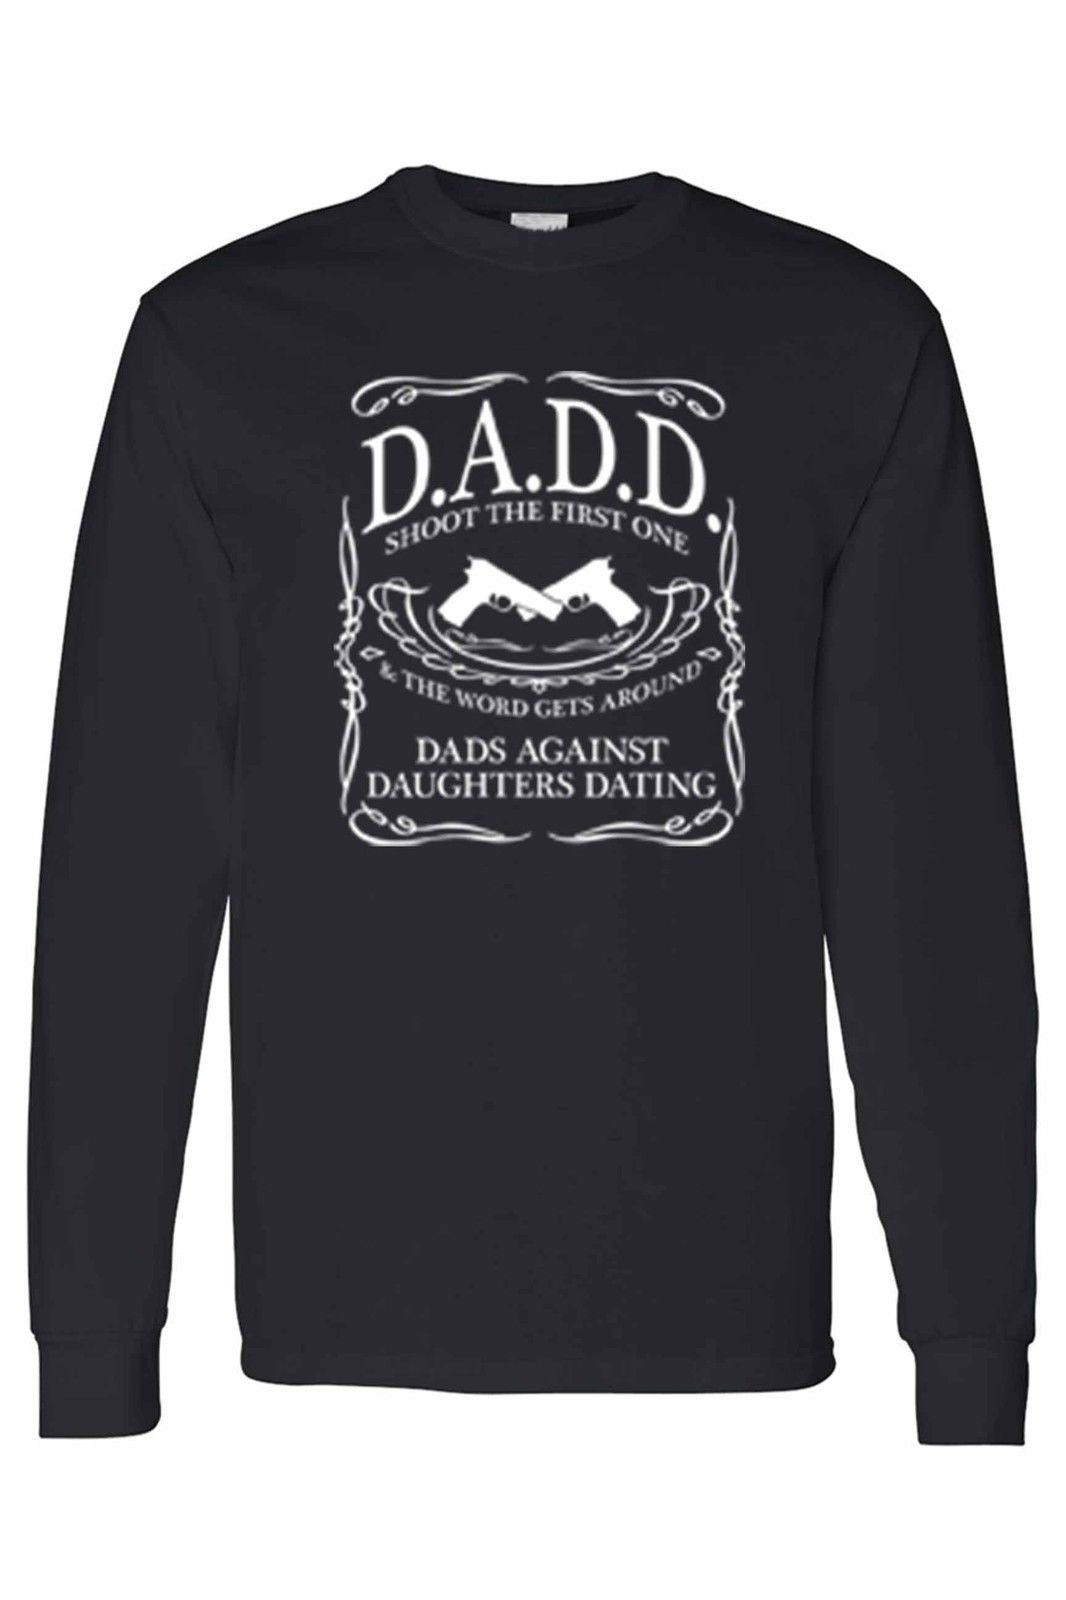 Dads Against Daughters Dating T-shirt Shoot The First One